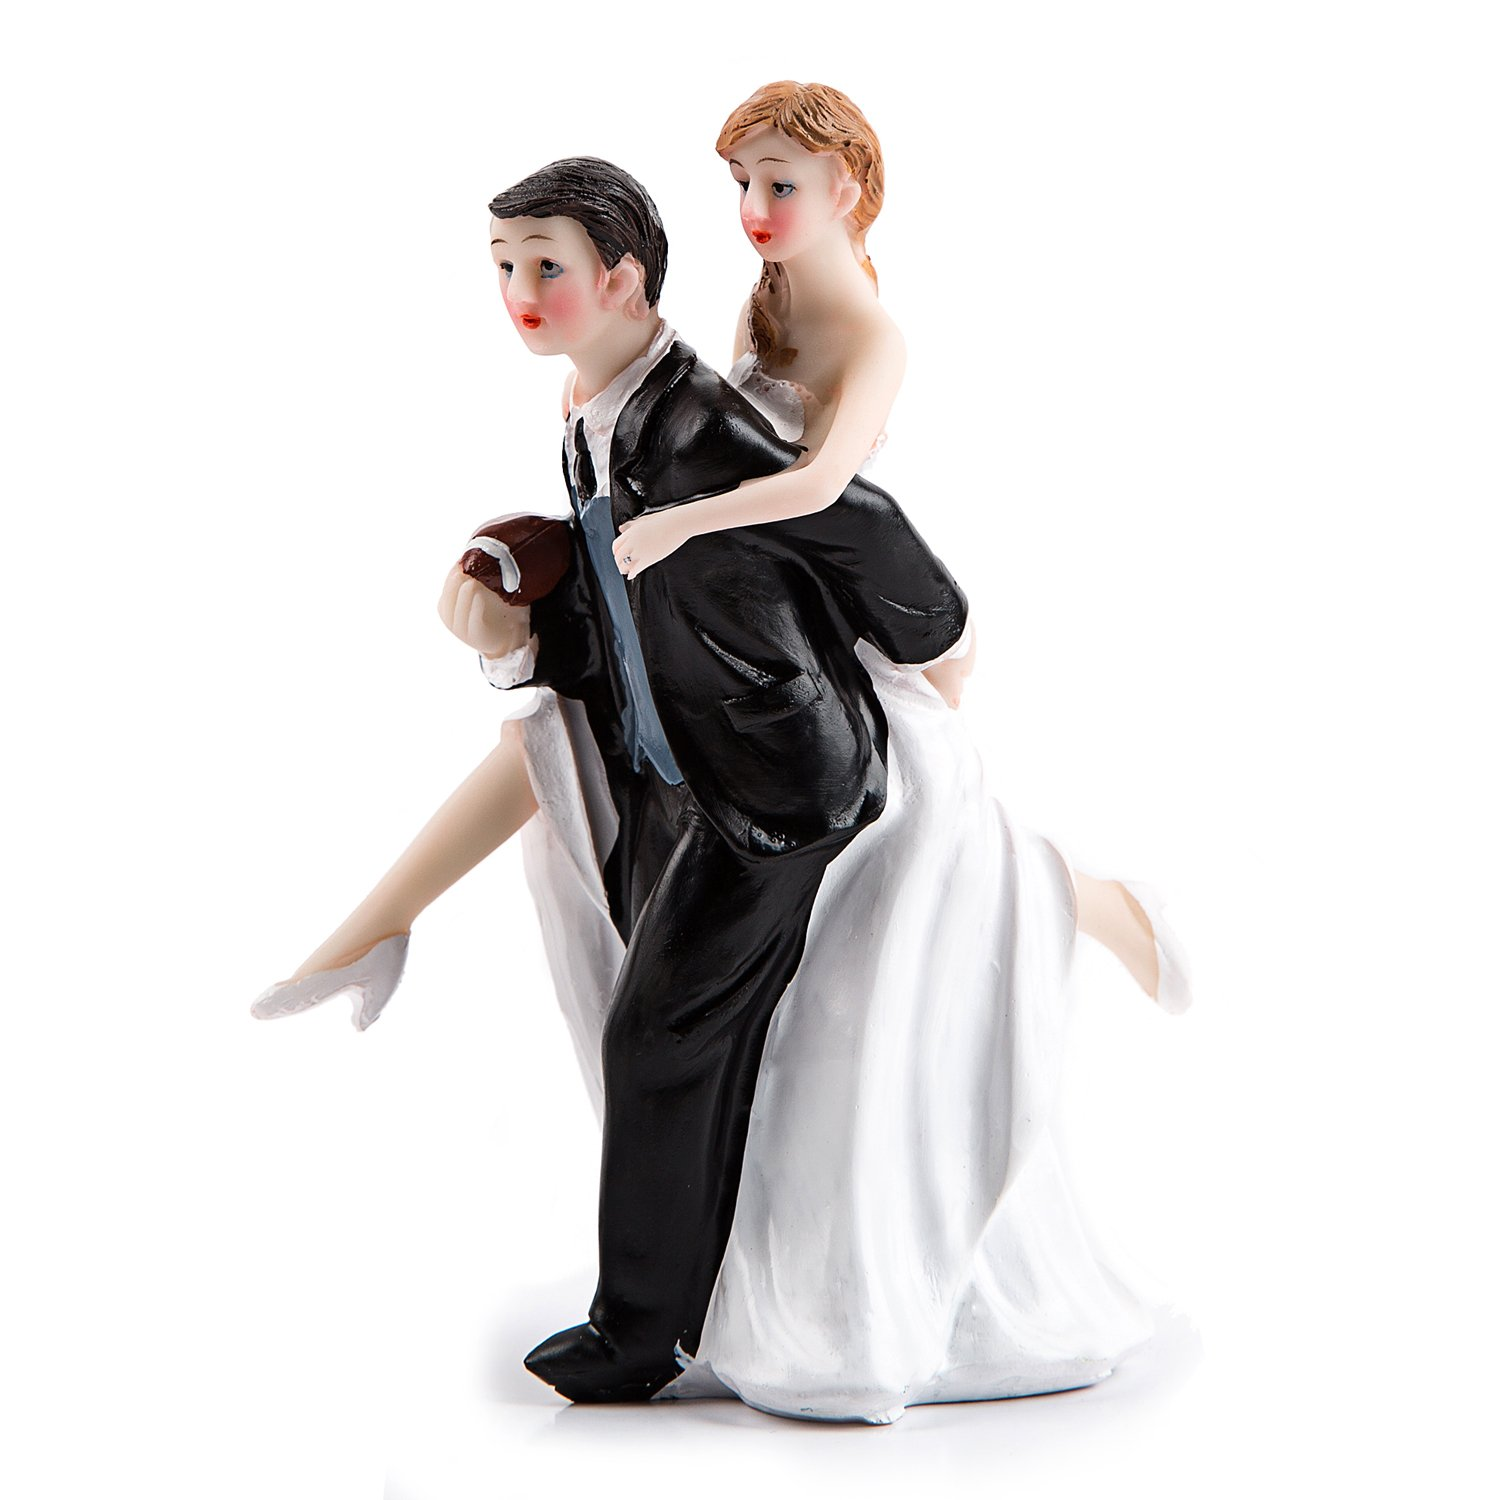 Click to buy PWedding Reception Decoration Ideas: Playful Football Wedding Couple Cake Topper from Amazon!